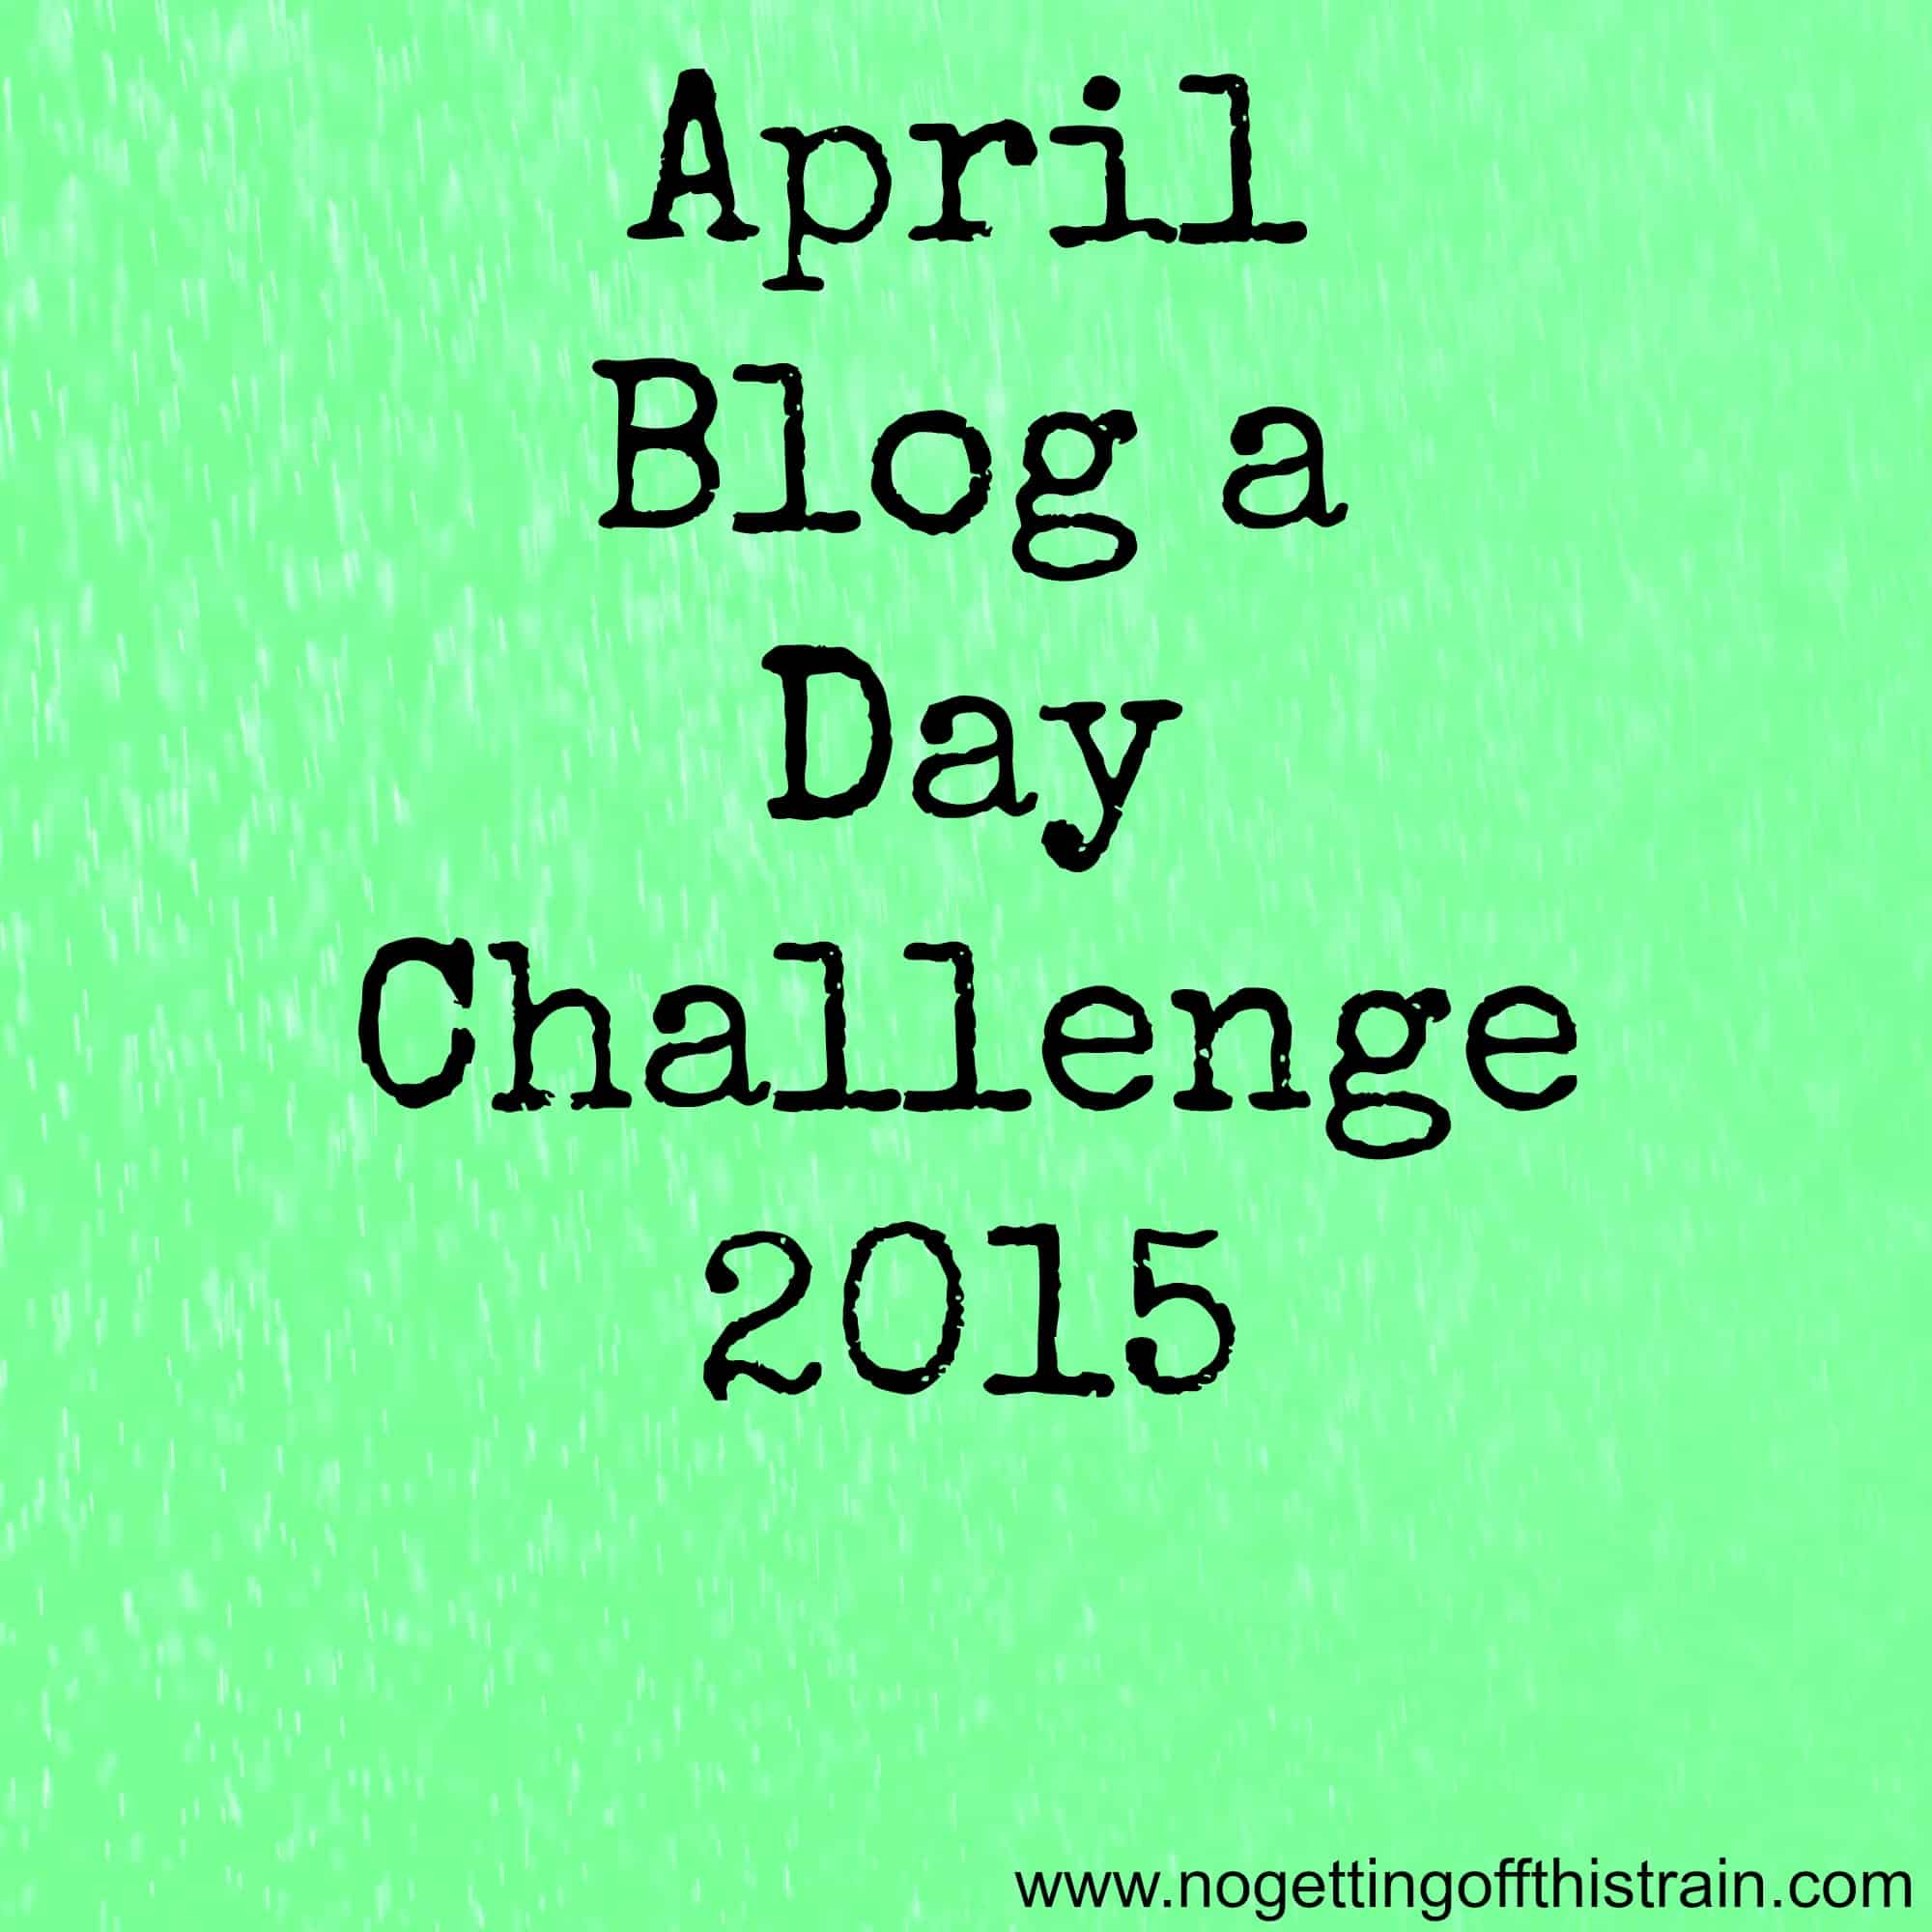 Blog a Day Challenge Day 4: The Last Time I Cried